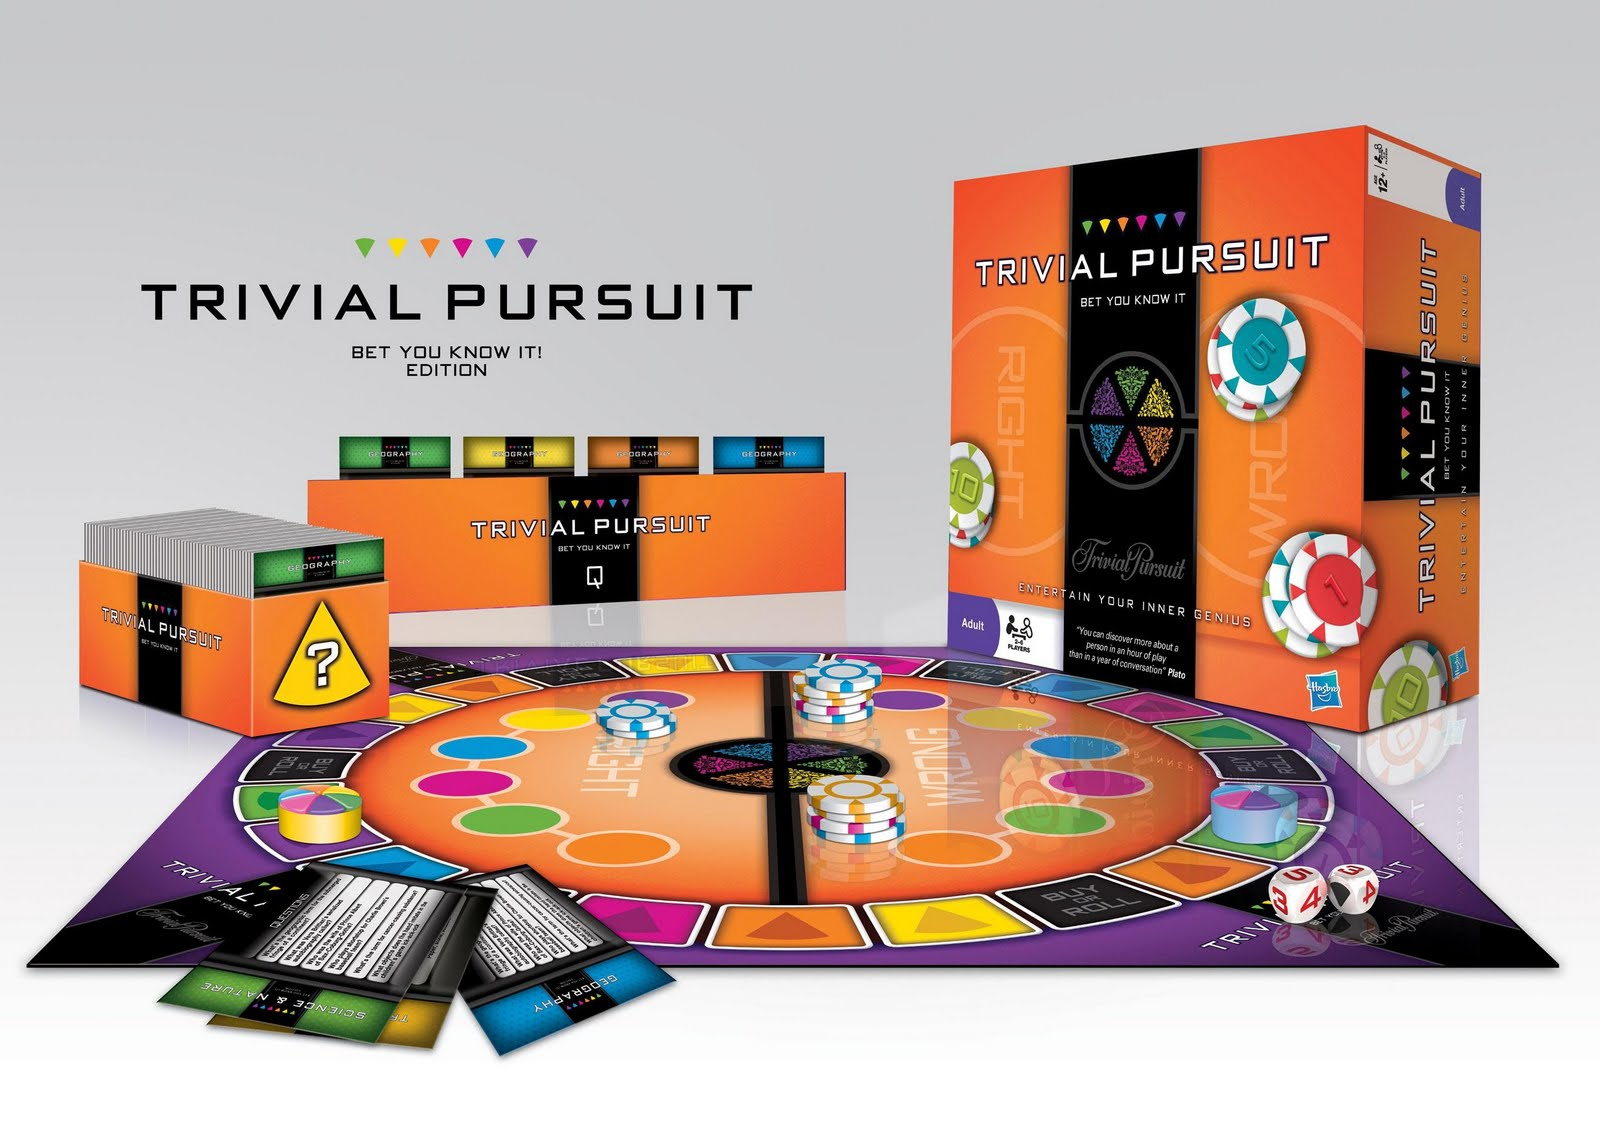 Trivial Pursuit Game For Xbox 360